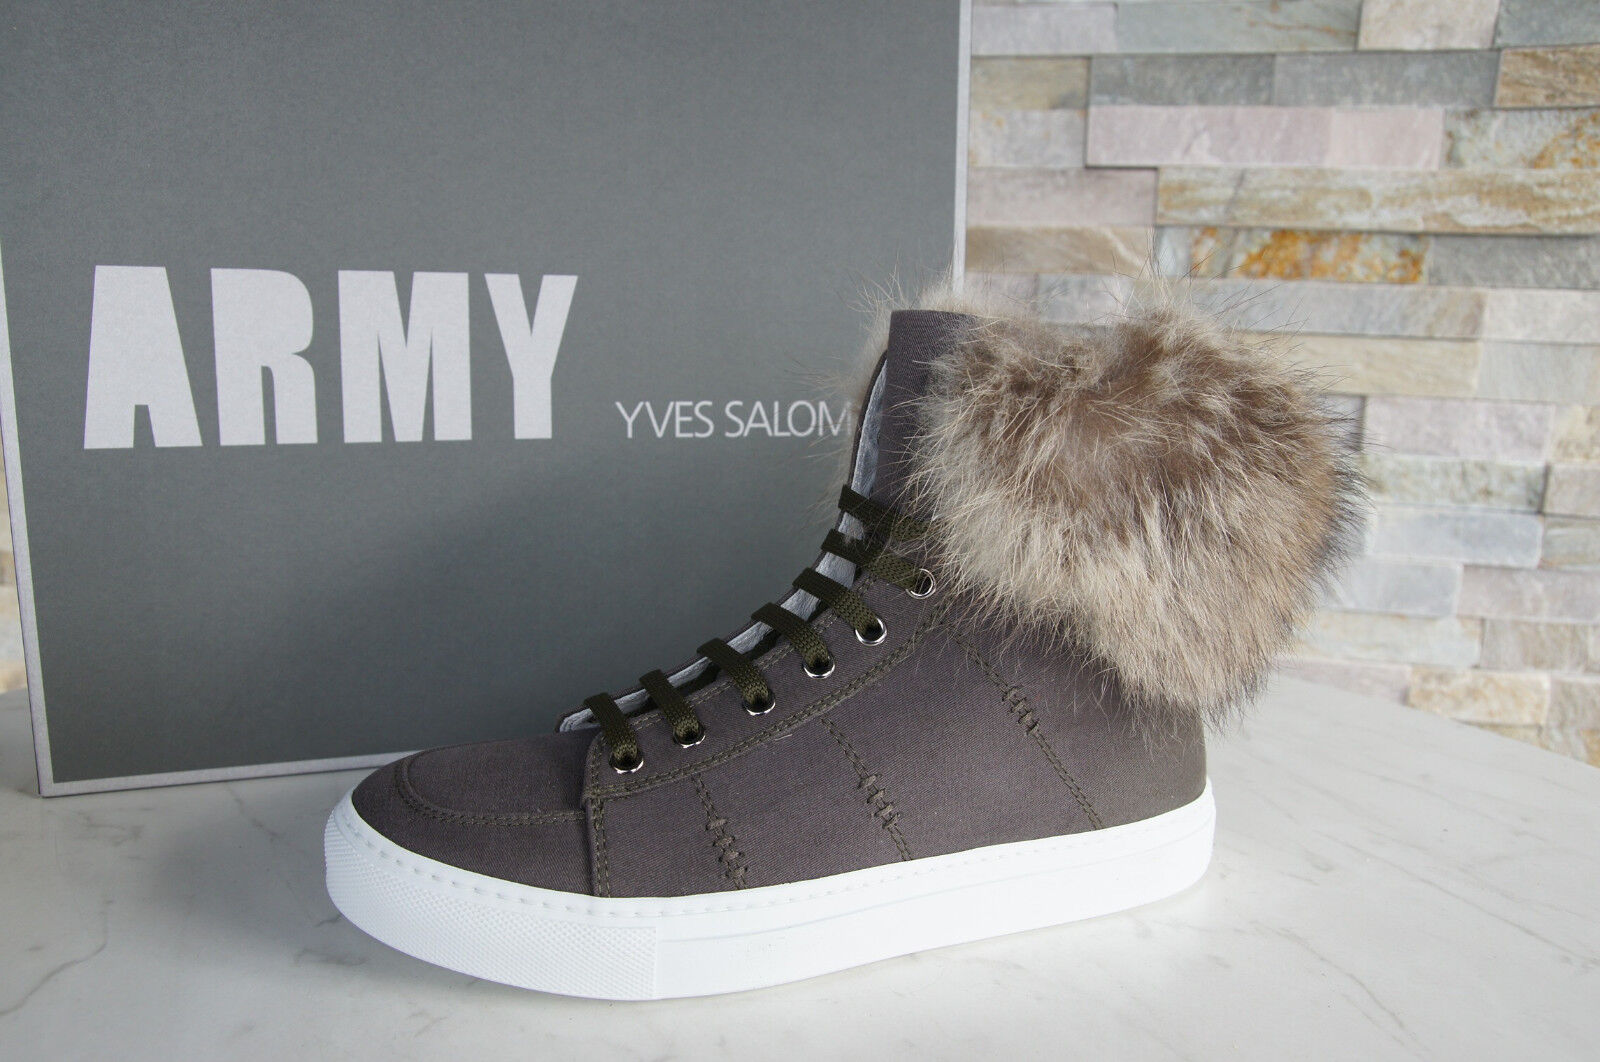 Army Yves Salomon Size 37 High Top Sneakers Marmot fur shoes New Ehemuvp